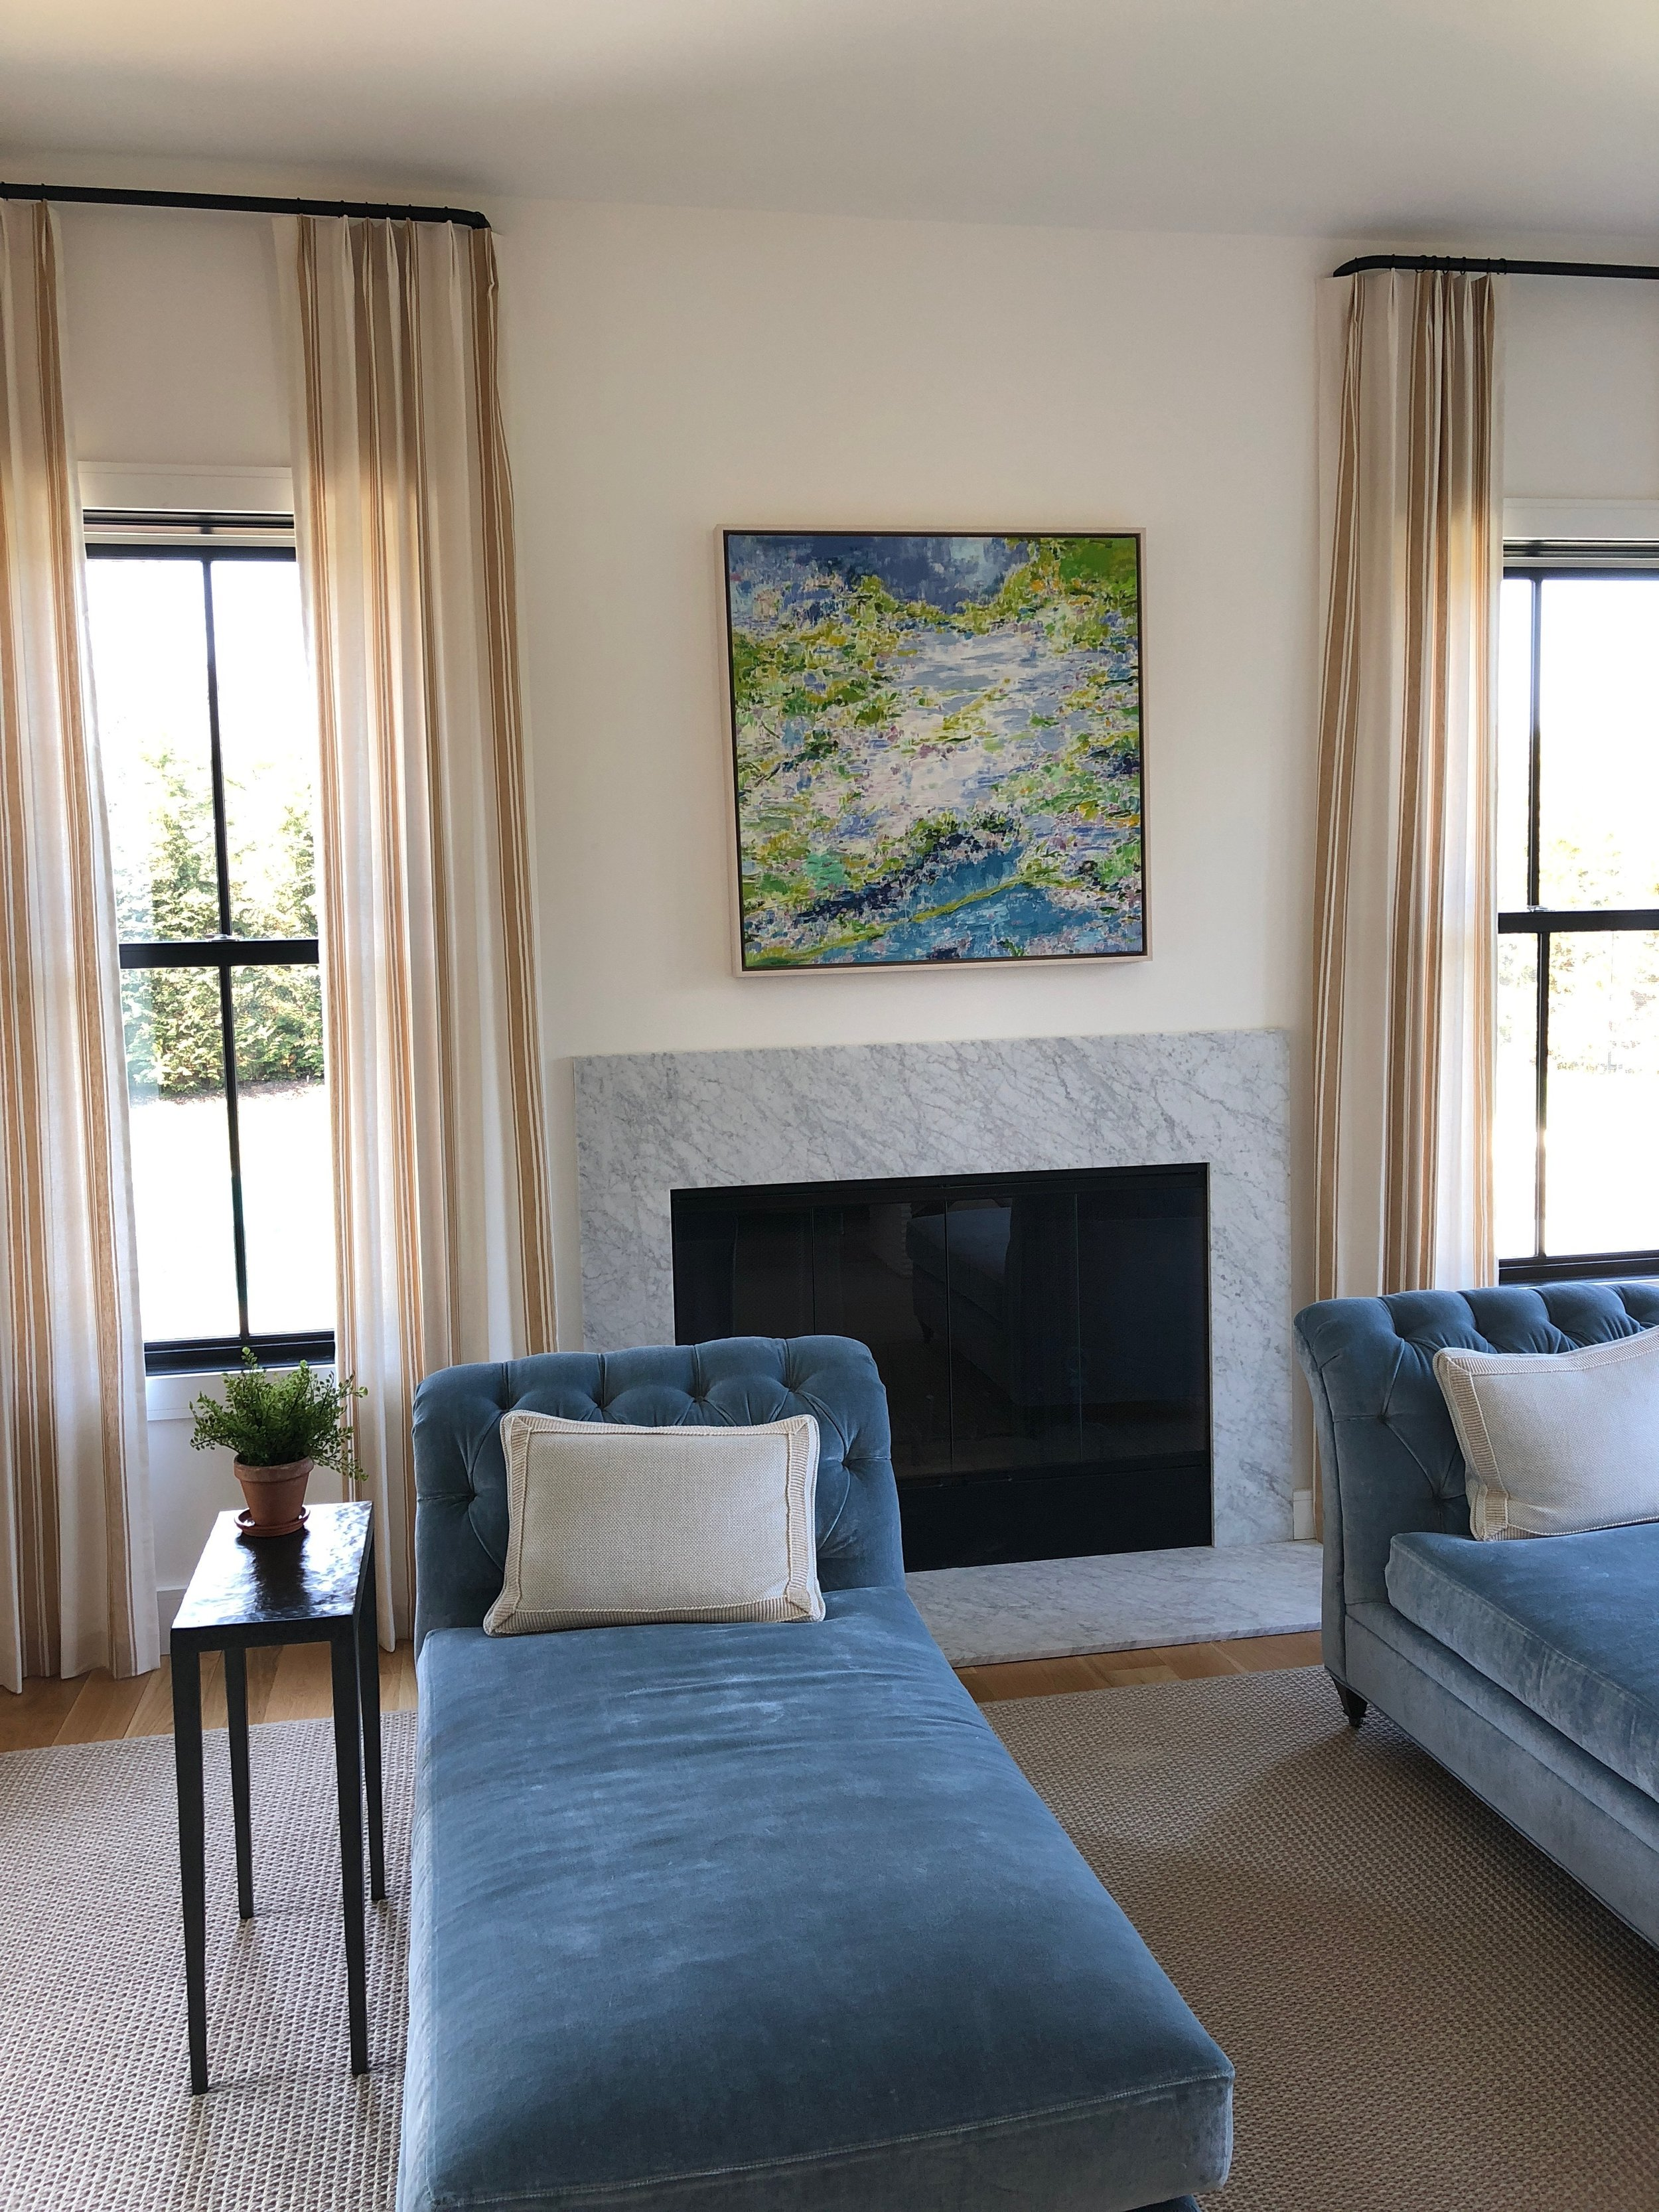 Earth Green Water Blue 2, 2017, Private Residence